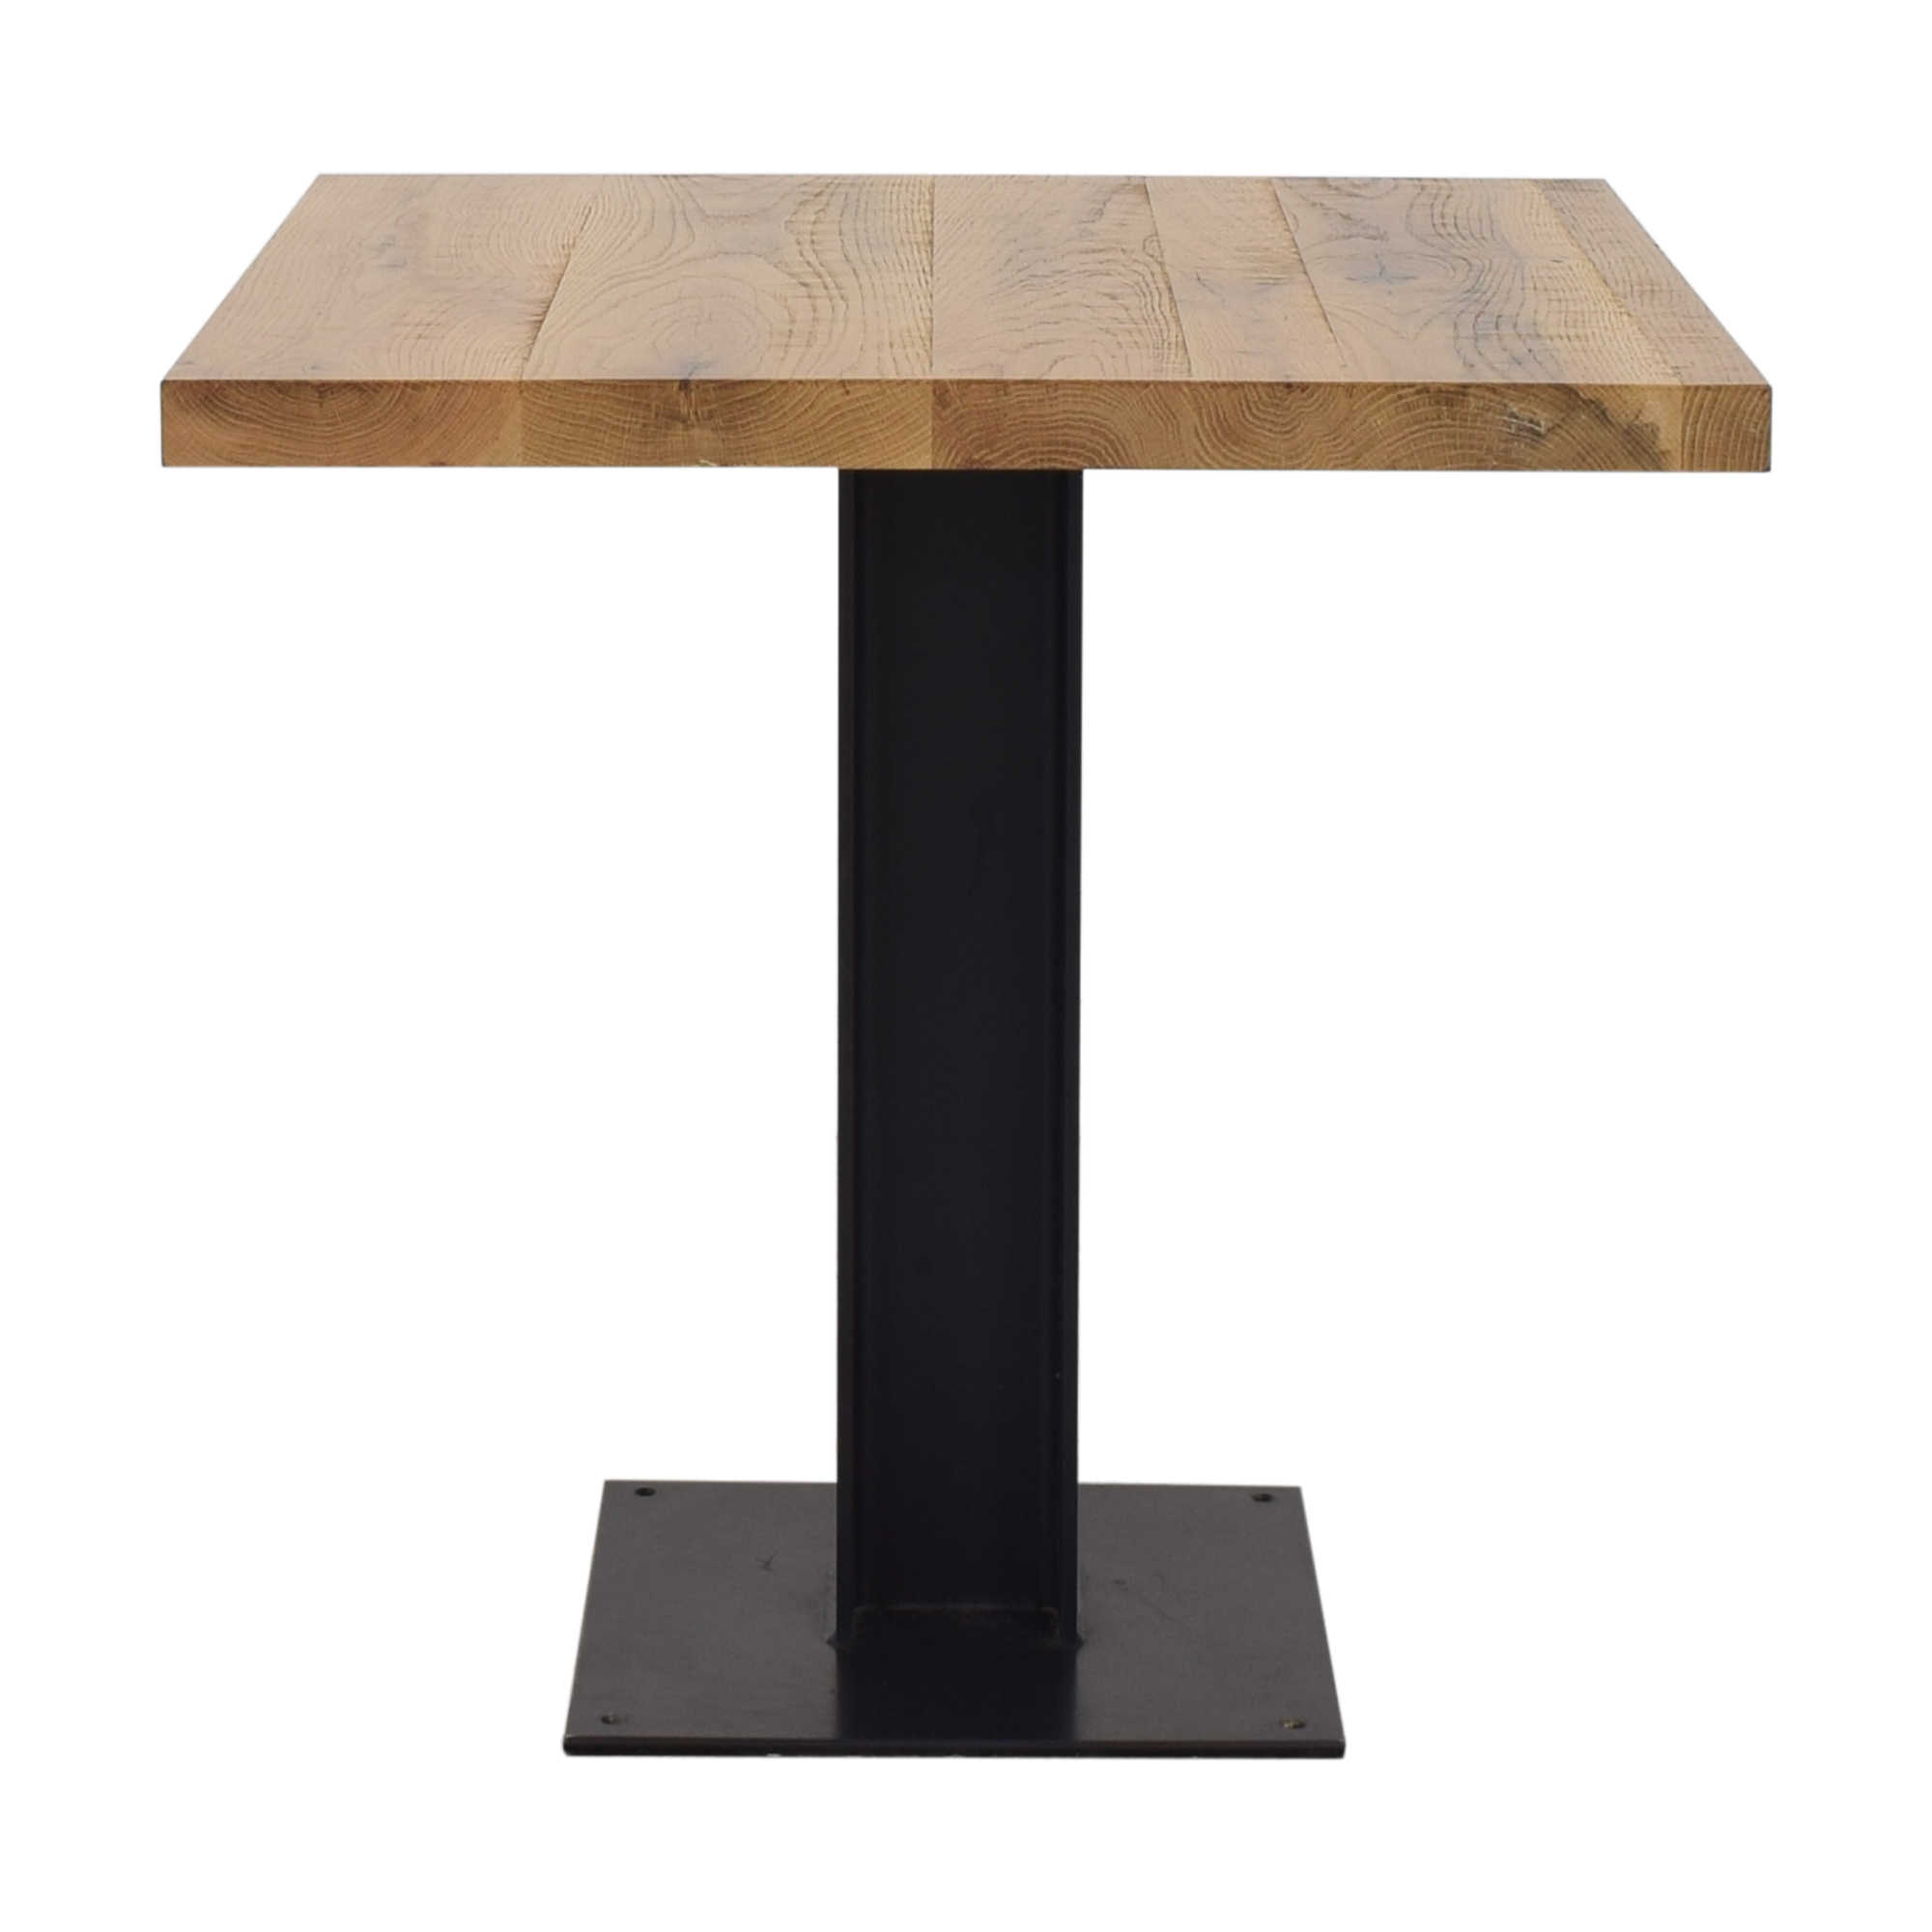 Crow Works Crow Works Fixed I-Beam Square Table coupon